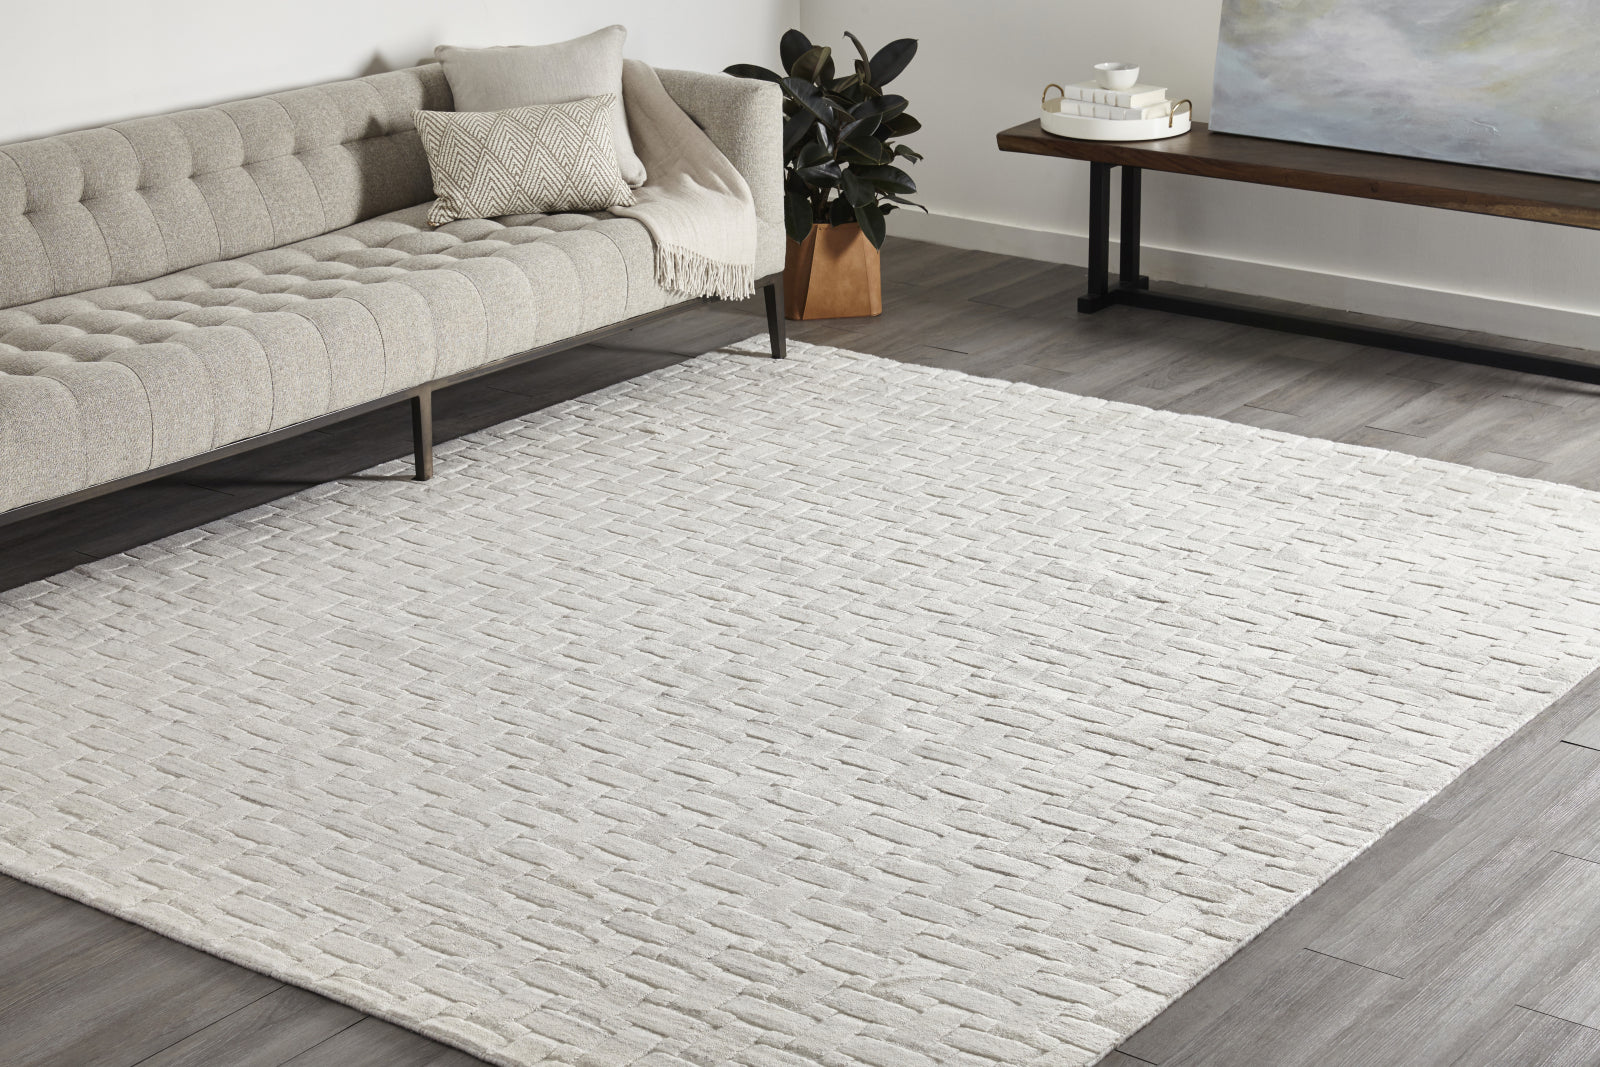 Solo Rugs Peyton S1122 Alabaster Area Rug main image